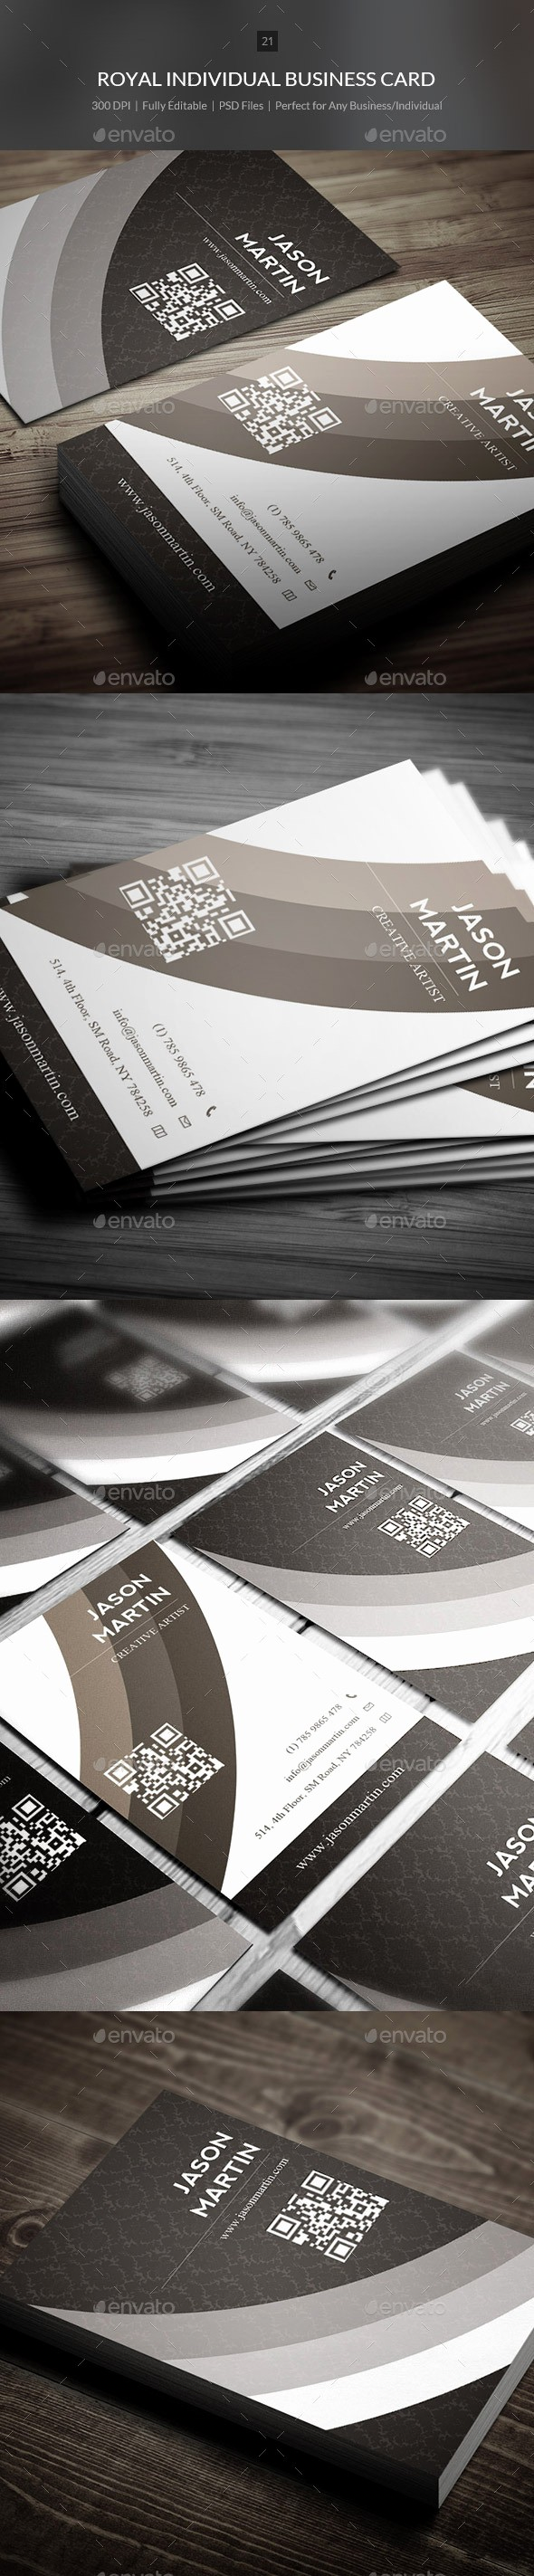 Royal Brites Business Card Template Elegant Template for Royal Brites Business Cards 21 6 Cm X 27 9 Cm